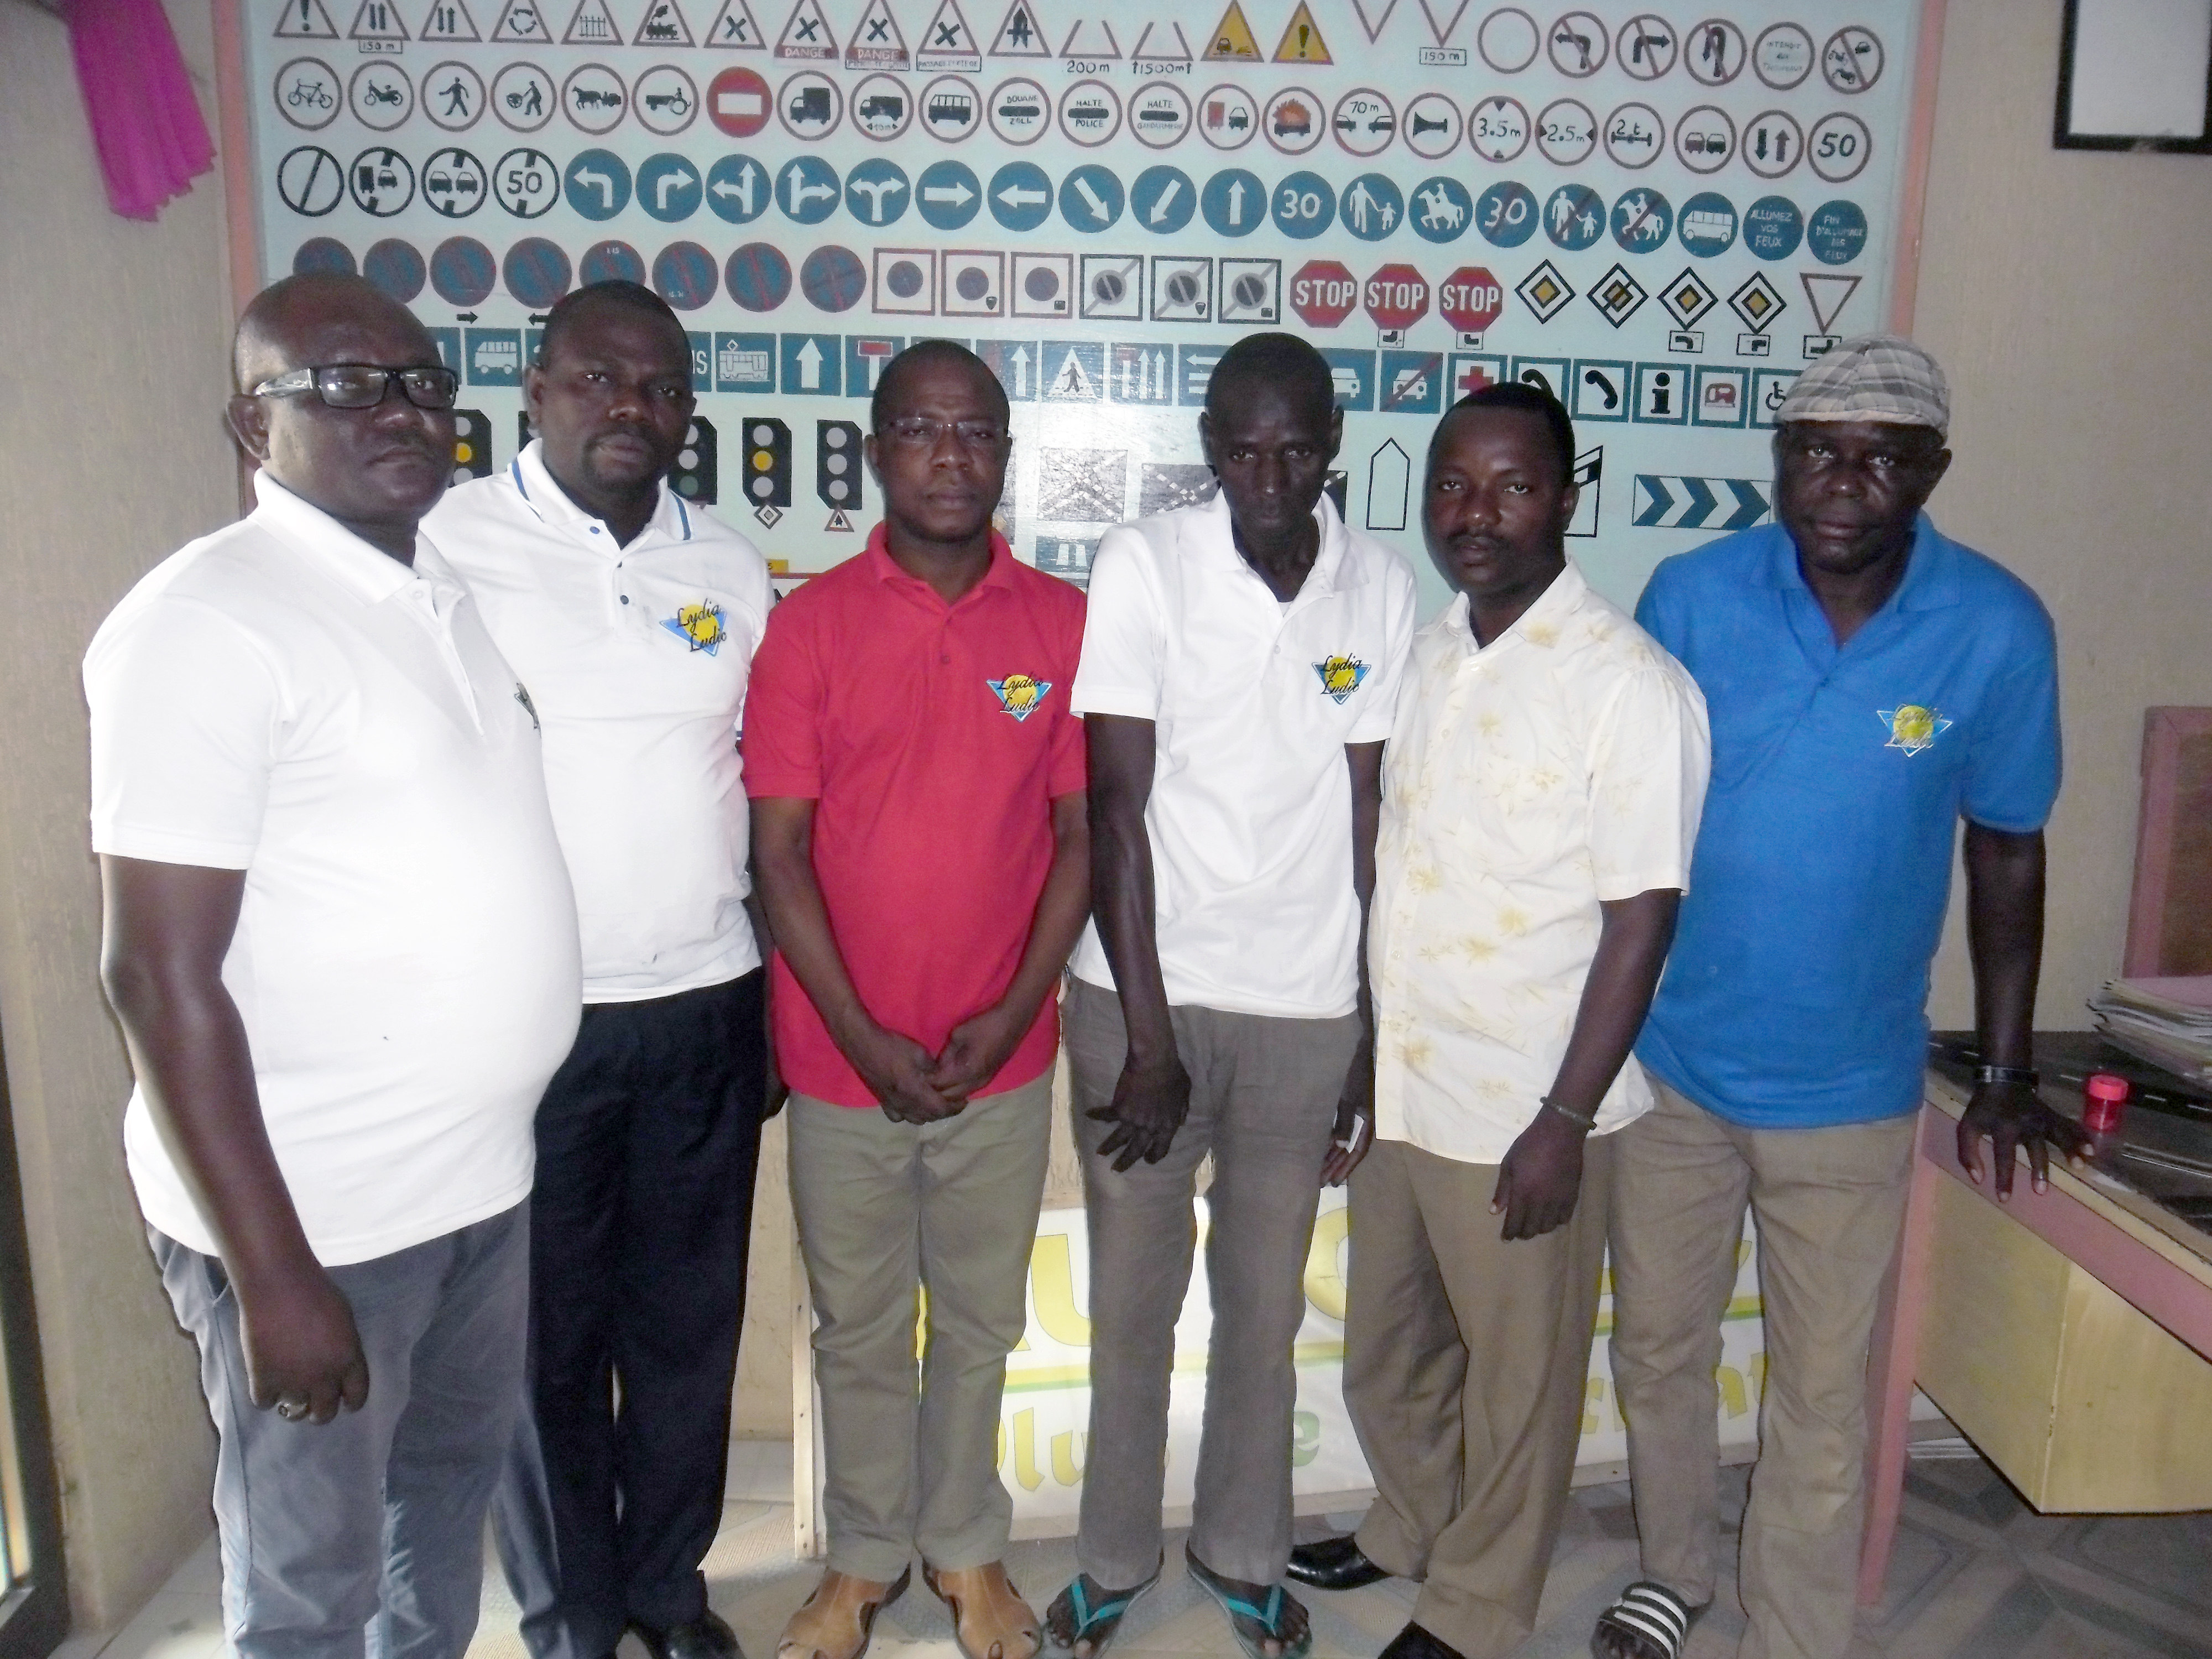 16-06-Lydia-Ludic-Togo-Lome-CSR-Interne-formation-chauffeur-nouveau-vehicules (3)